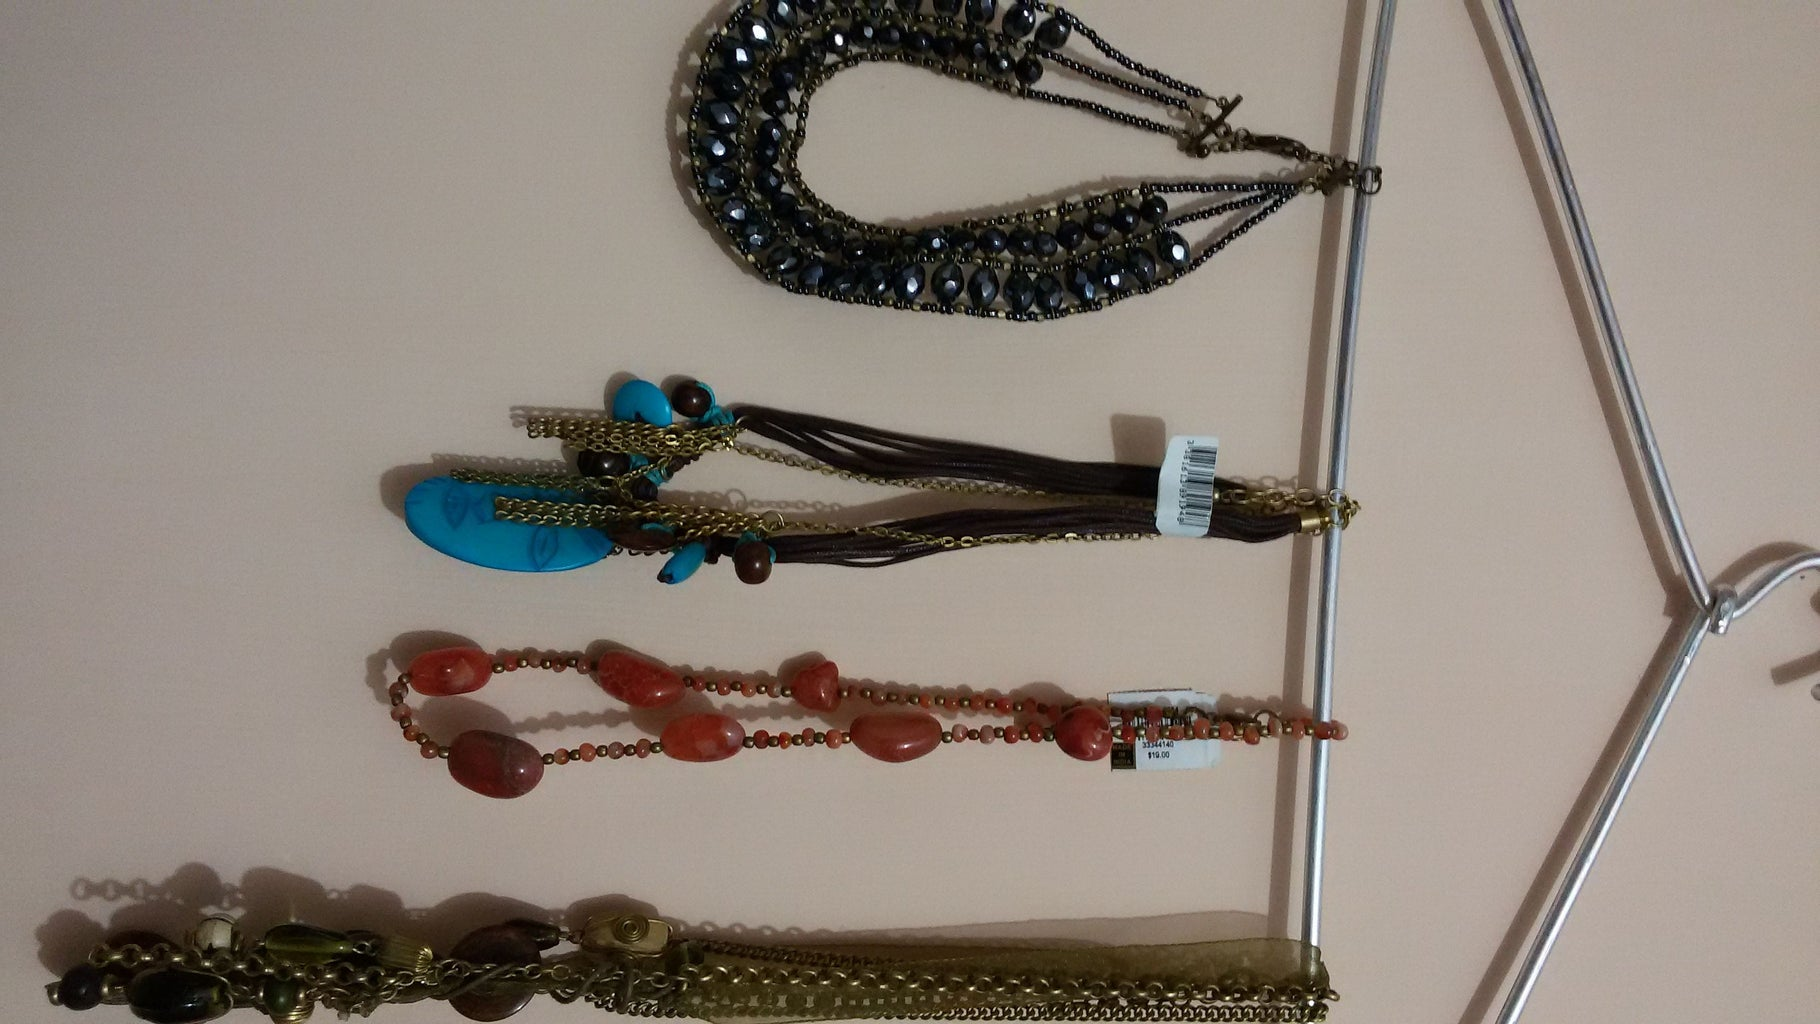 Clothes Hangers- Hang Necklaces and Keep Your Scarves Together in One Place!